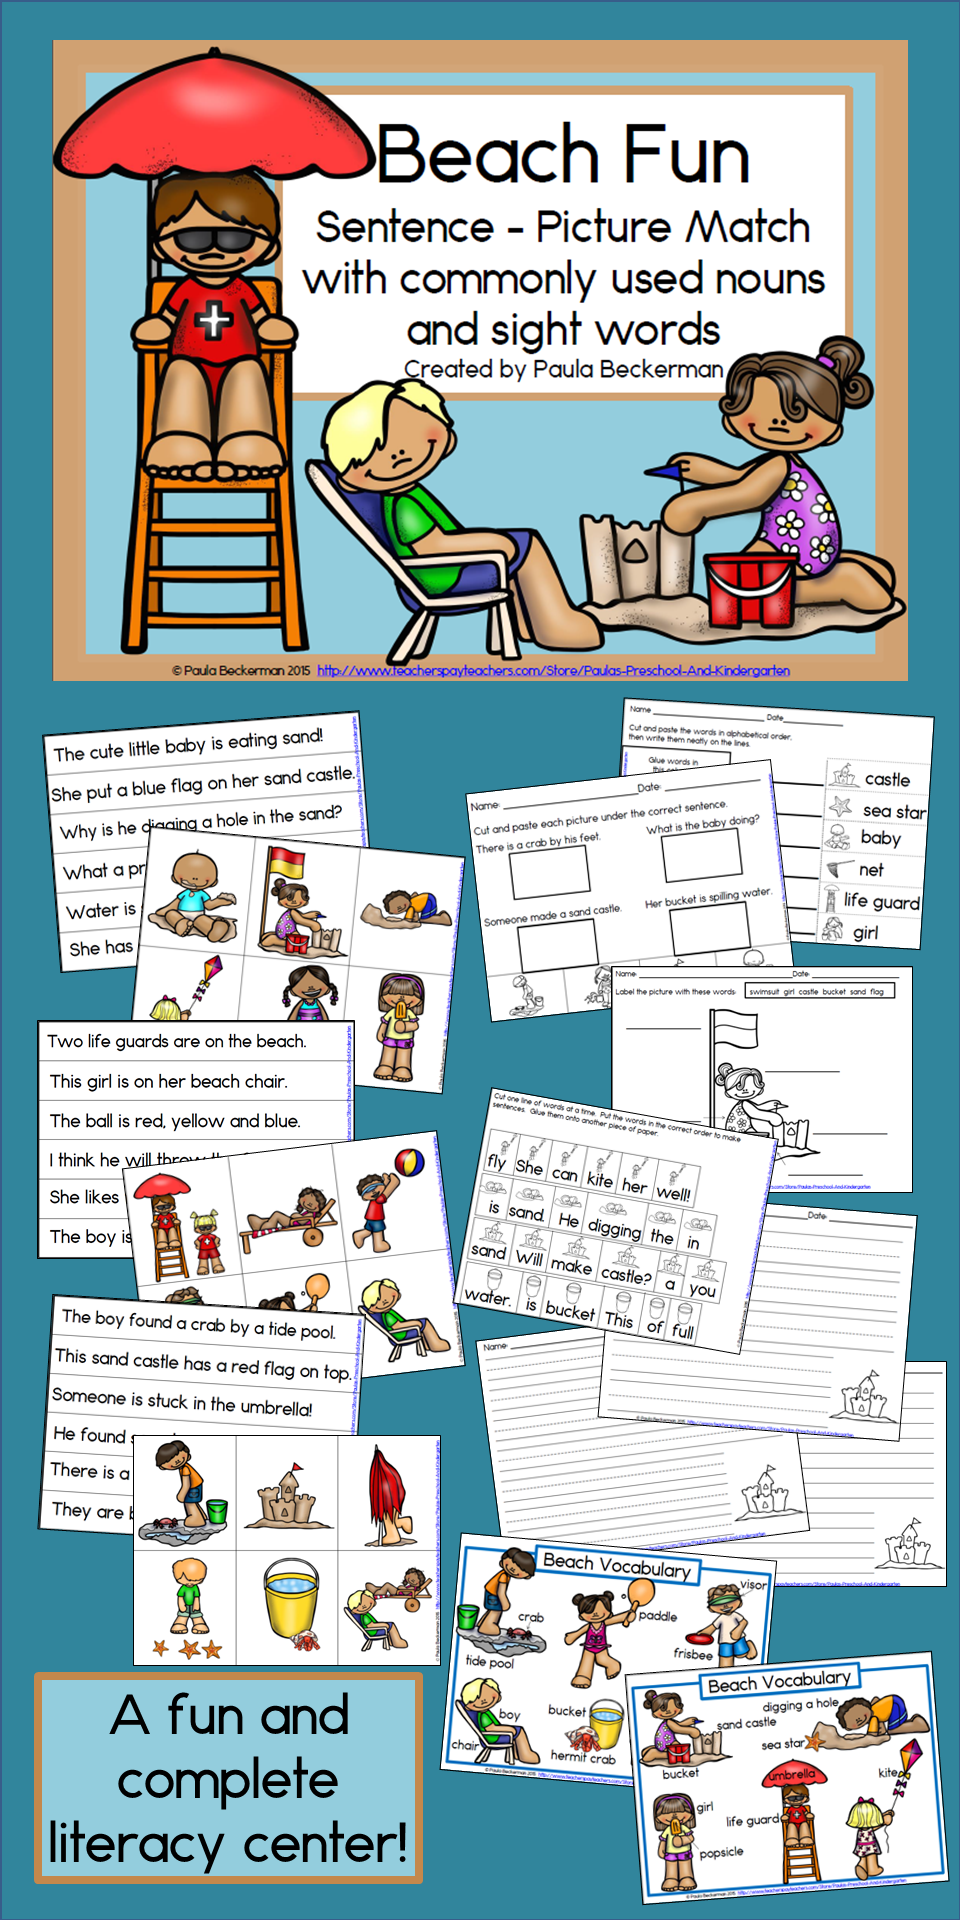 Beach Fun Sentence Picture Match Reading Center | Pinterest | Beach ...